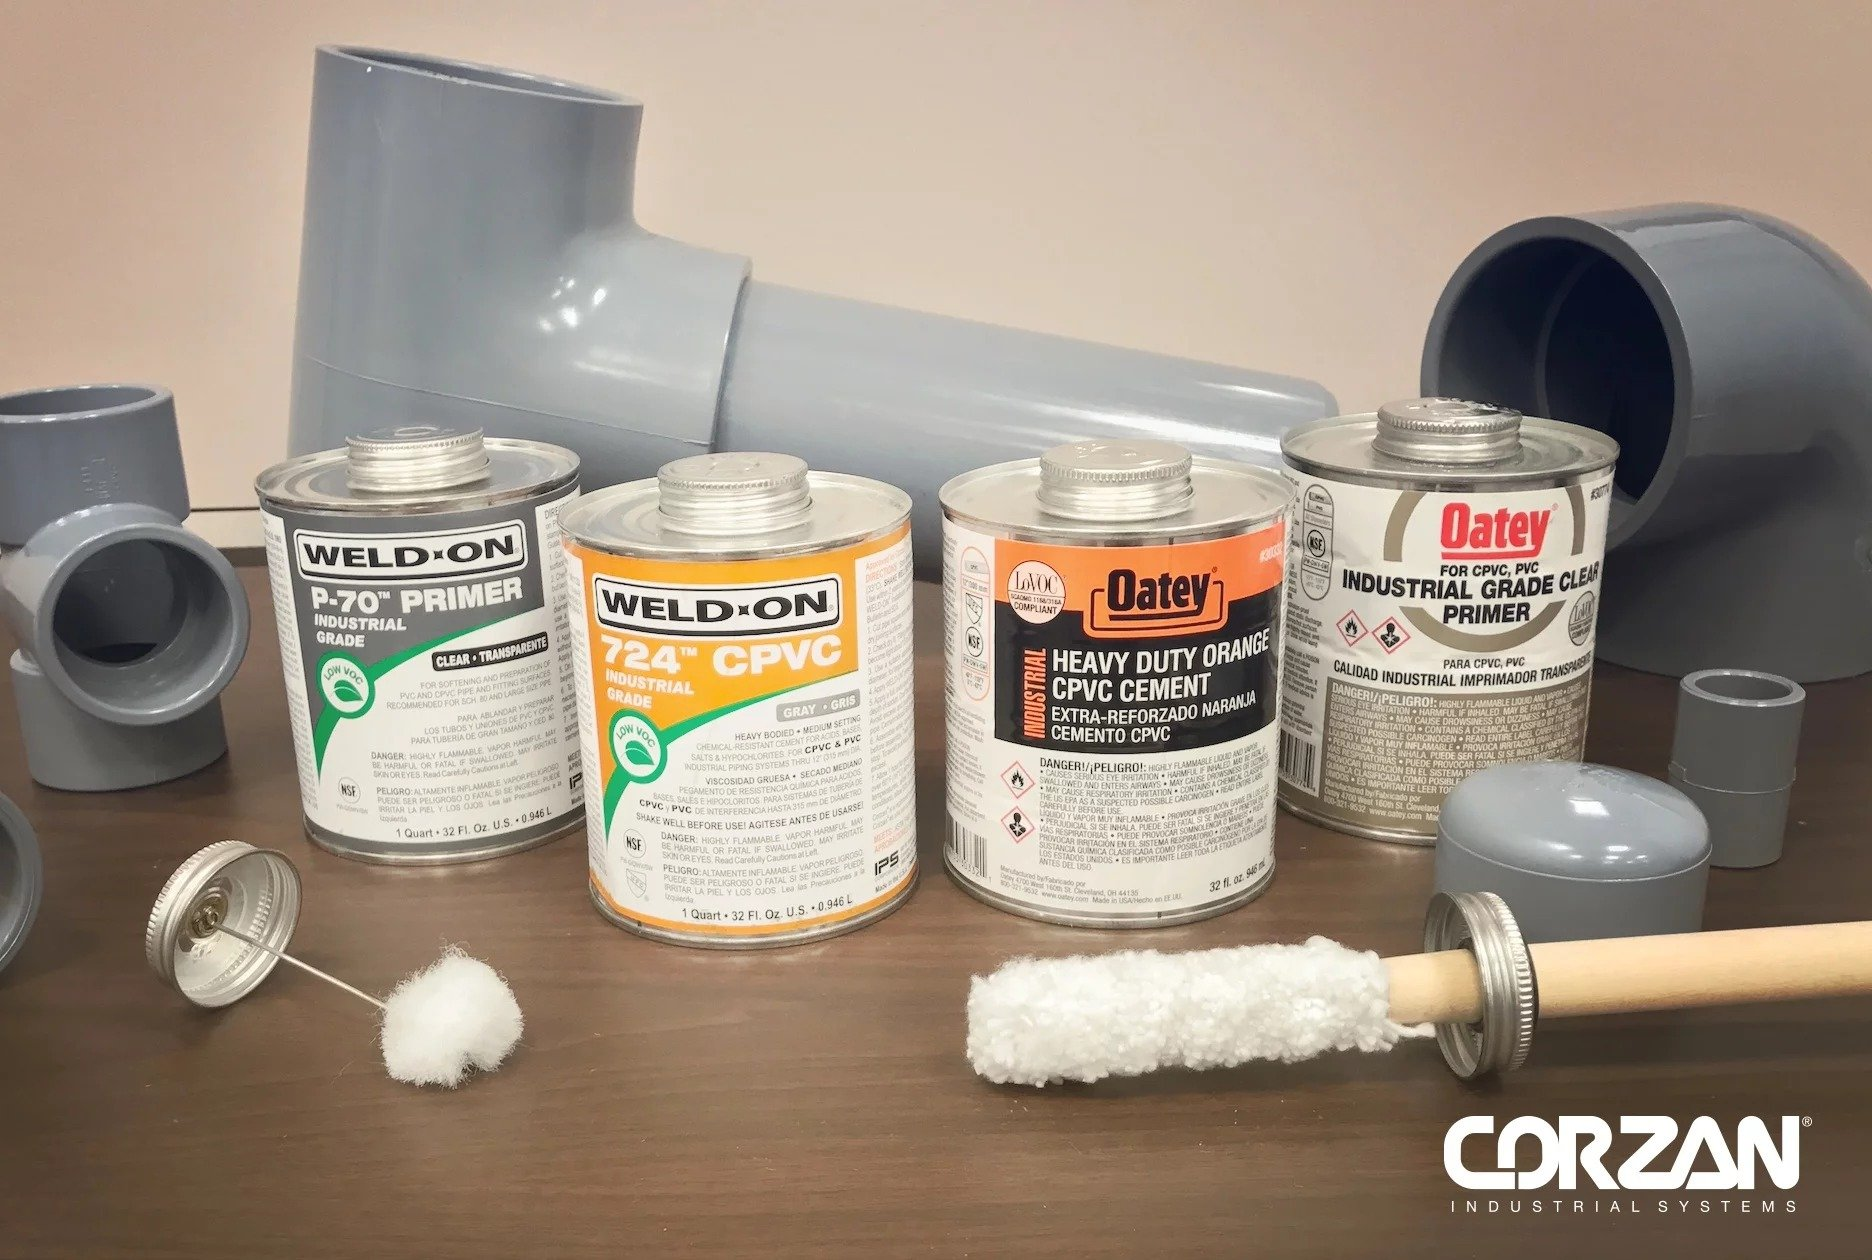 WHAT IS SOLVENT CEMENT AND WHY IS IT USED FOR CPVC PIPING SYSTEMS?